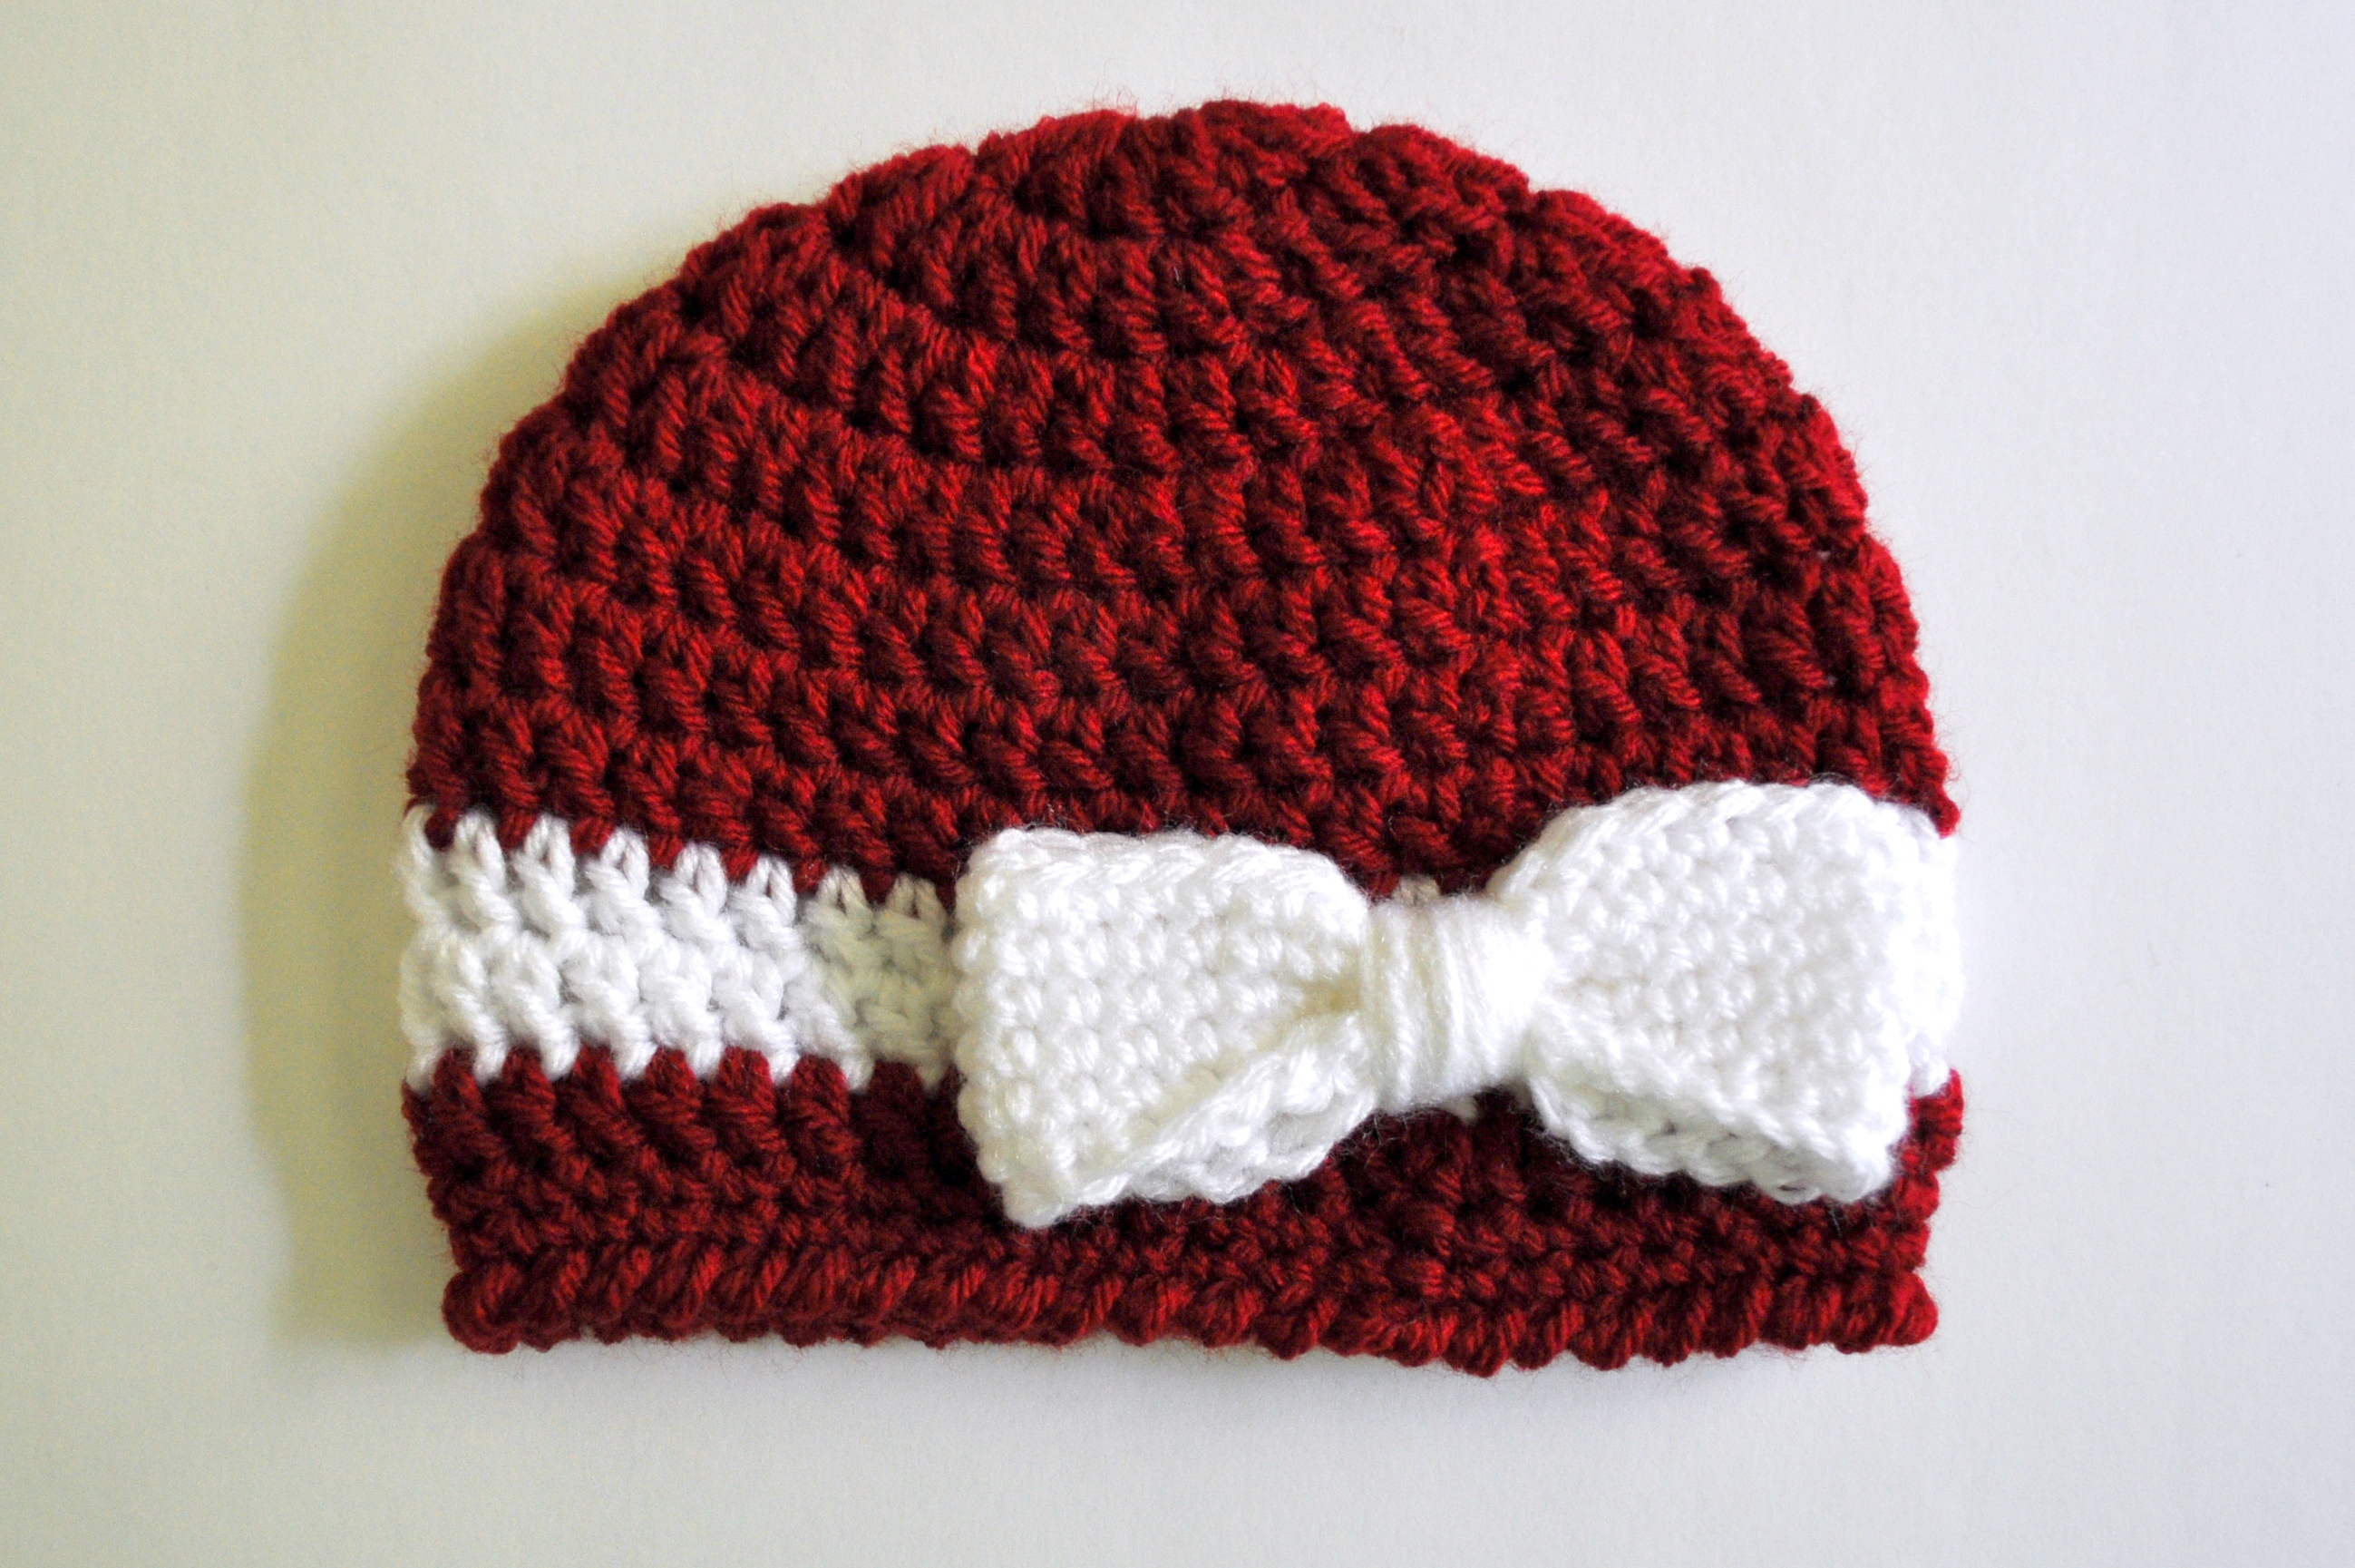 Crocheting Baby Hats : 25 Easy Crochet Bow Patterns Guide Patterns